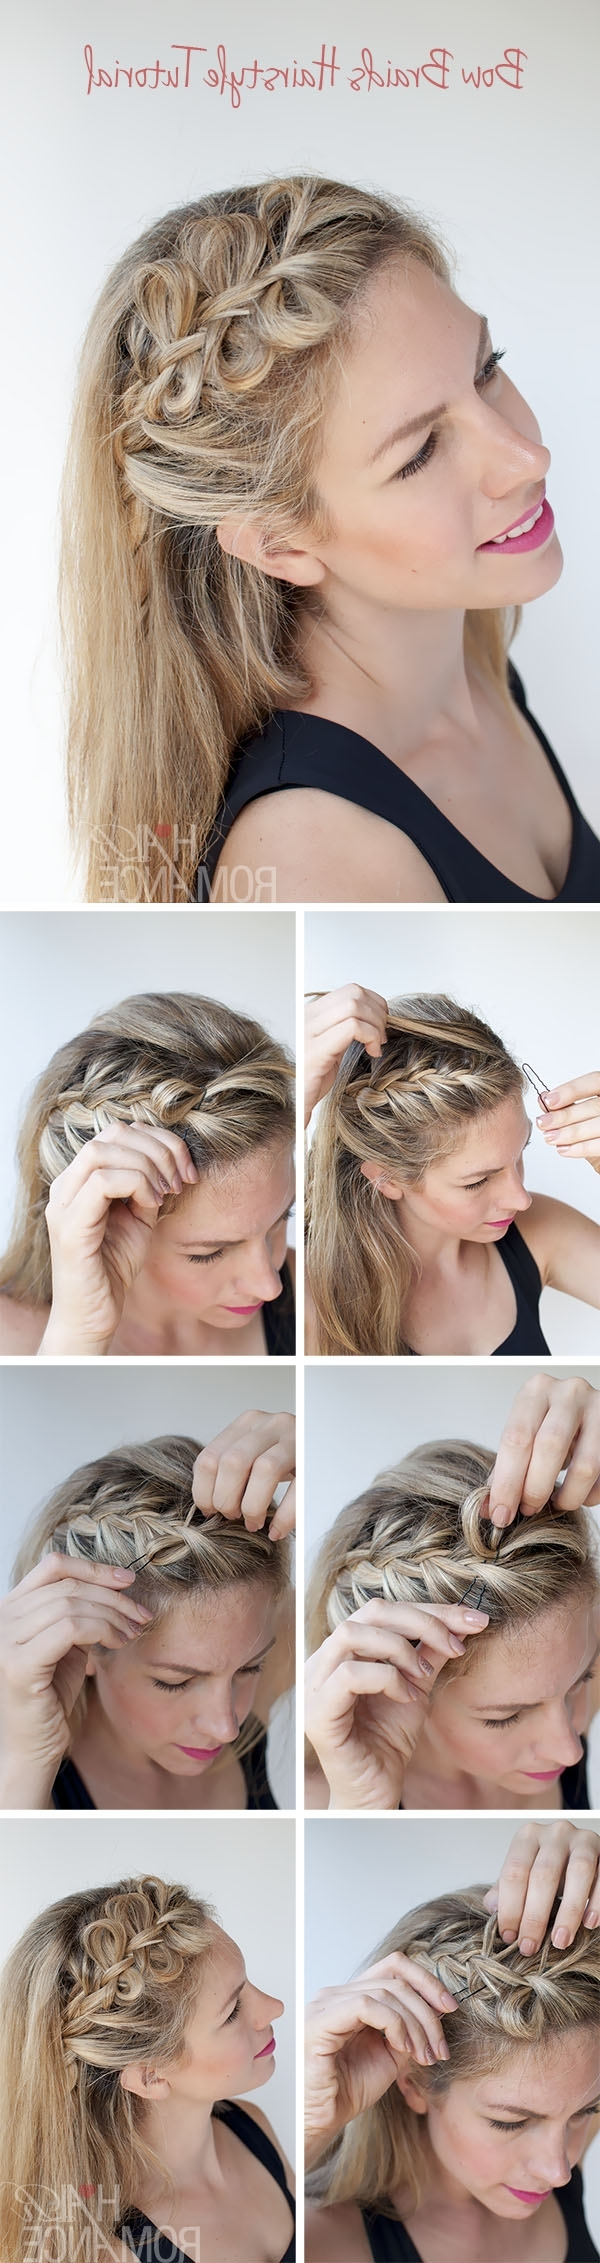 12 Romantic Braided Hairstyles With Useful Tutorials – Pretty Designs In Widely Used Romantic Braid Hairstyles (View 13 of 15)